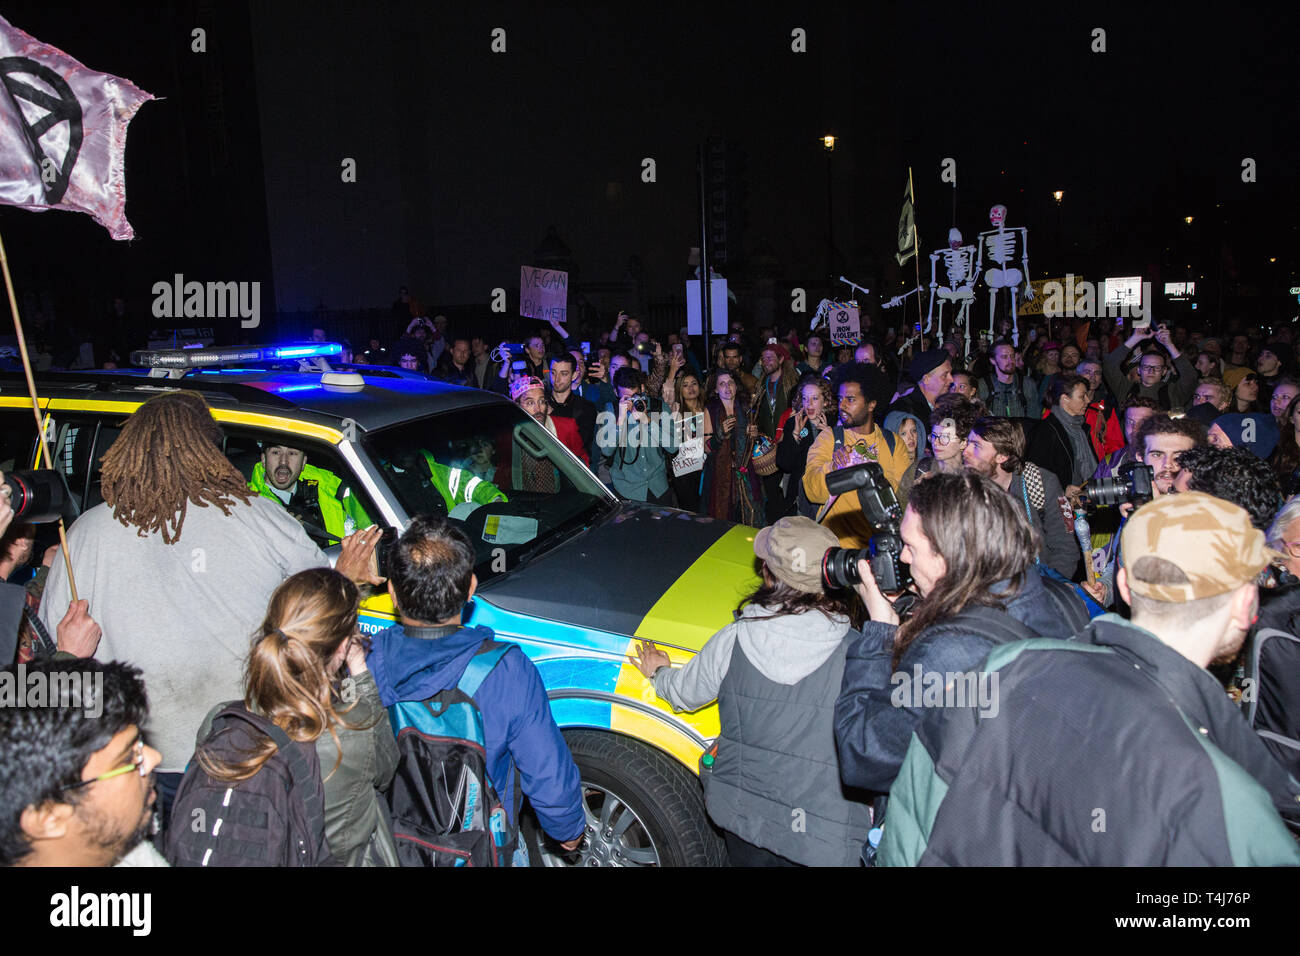 London, UK. 17th April 2019. A police vehicle is briefly trapped among drummers from climate change action movement Extinction Rebellion marching towards Westminster Bridge from Parliament Square during a police operation to clear protesters taking part in the International Rebellion in order to reopen the square to traffic.  Credit: Mark Kerrison/Alamy Live News - Stock Image